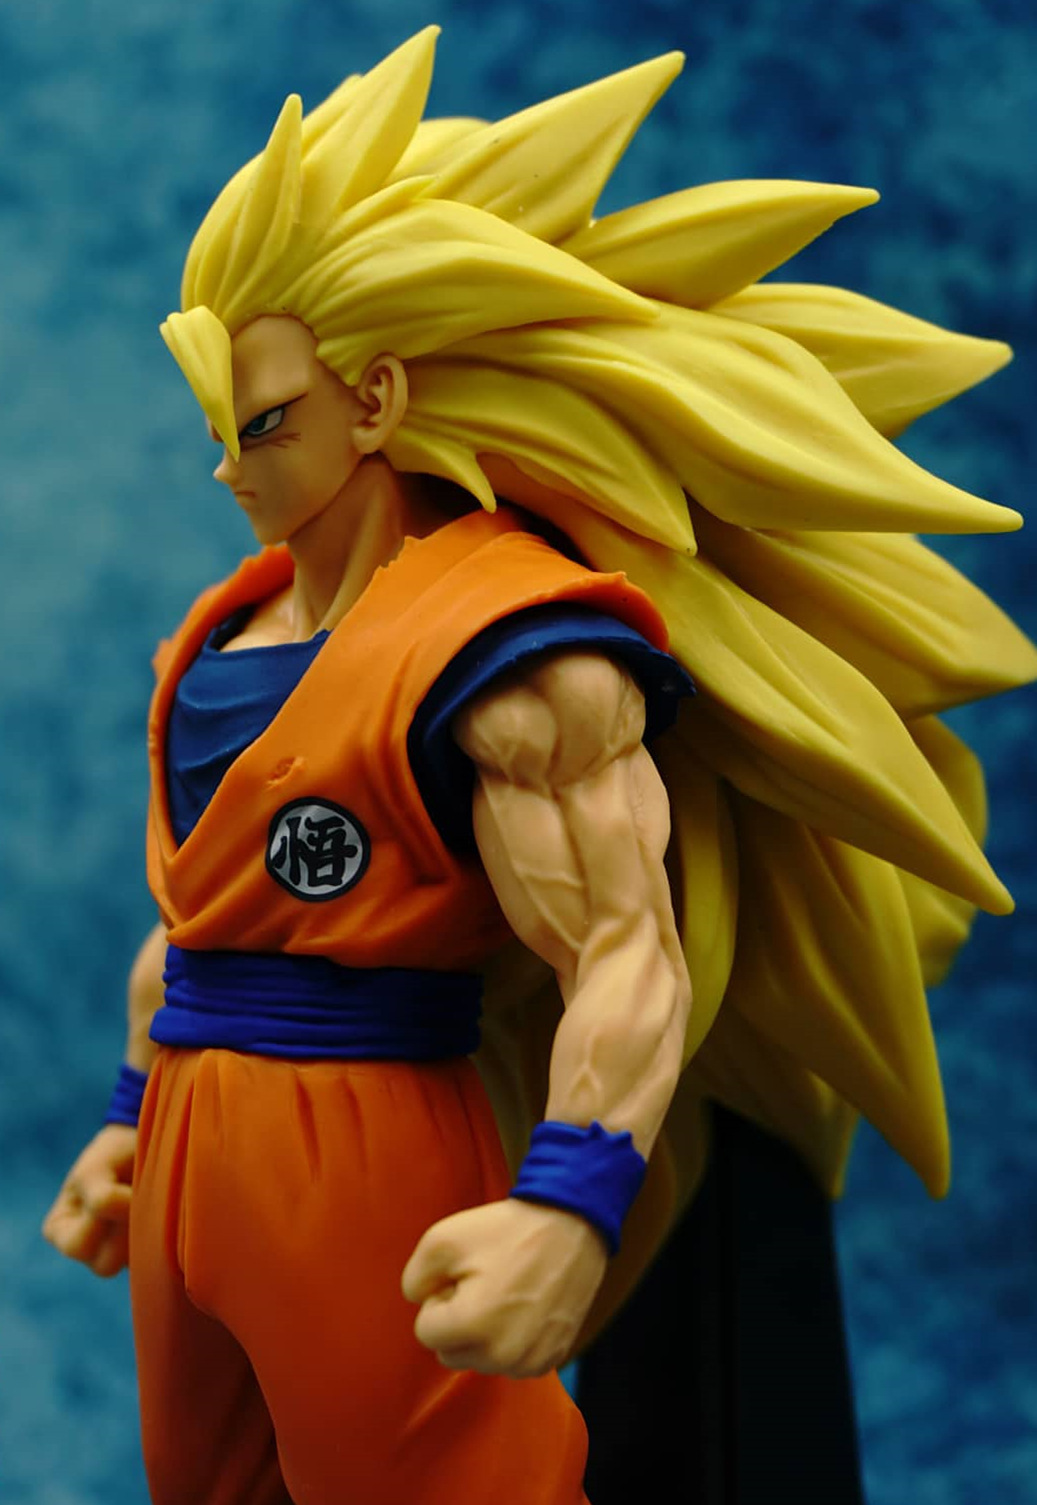 Dragon ball z saiyan son goku doll toy anime crazy store - Dragon ball z goku son ...